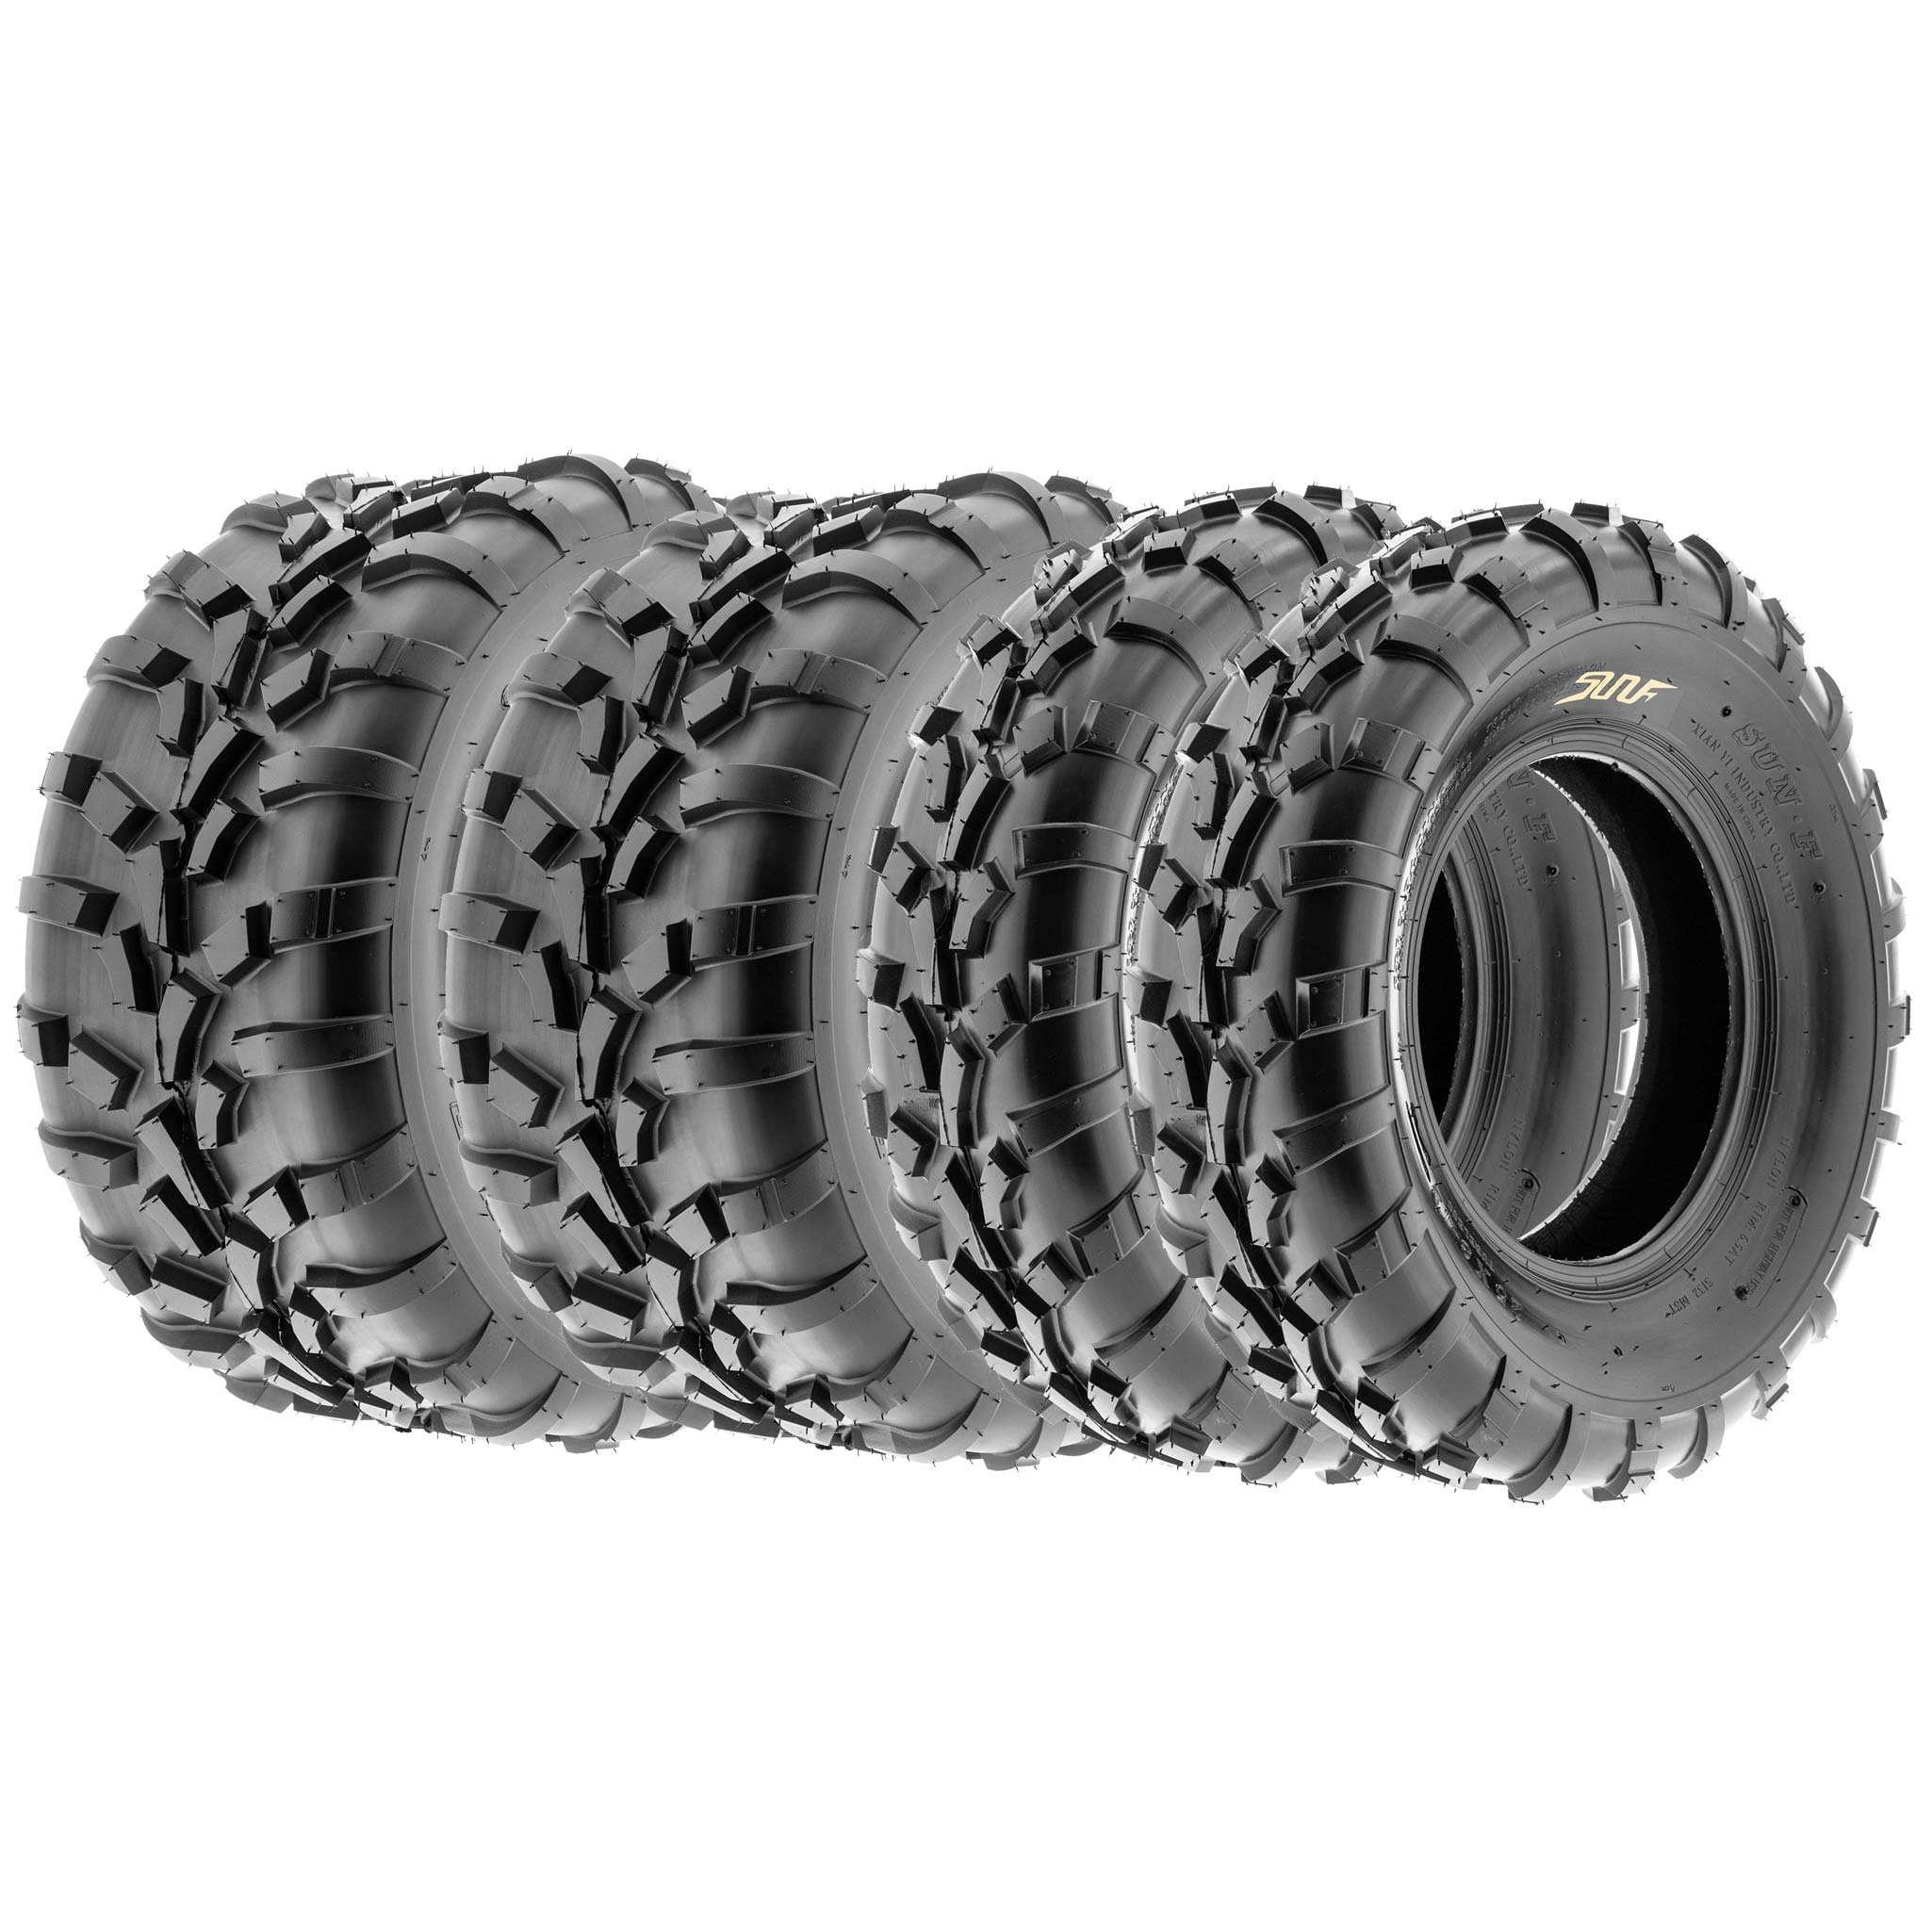 SunF Sport A/T UTV ATV Tires 25x8-12 & 25x11-10 6 PR A010 (Full set of 4)